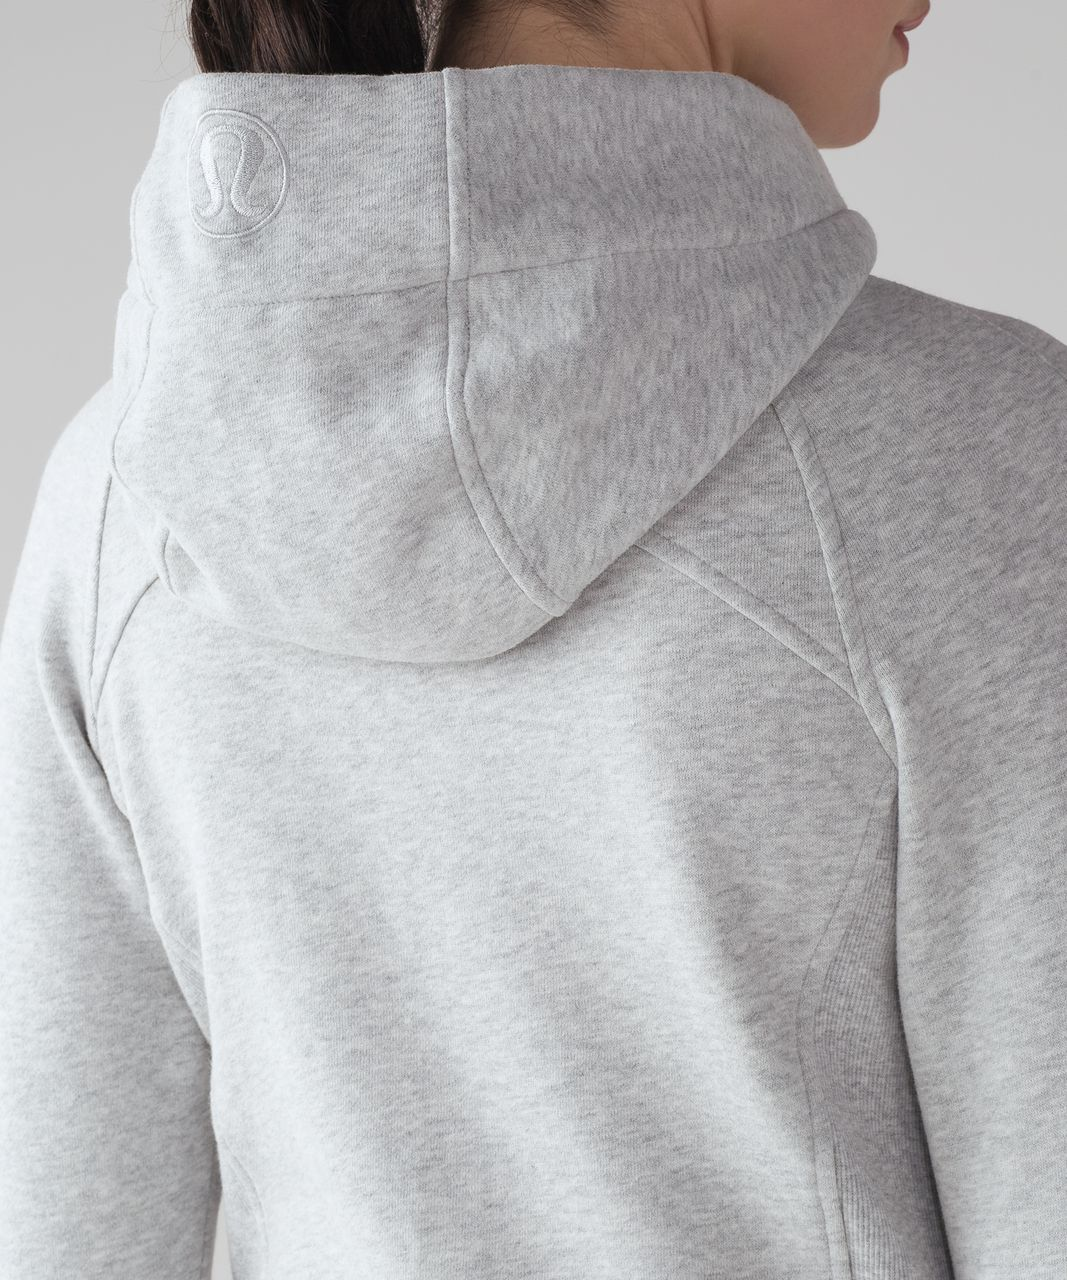 Lululemon Scuba Hoodie *Light Cotton Fleece - Heathered Vapor